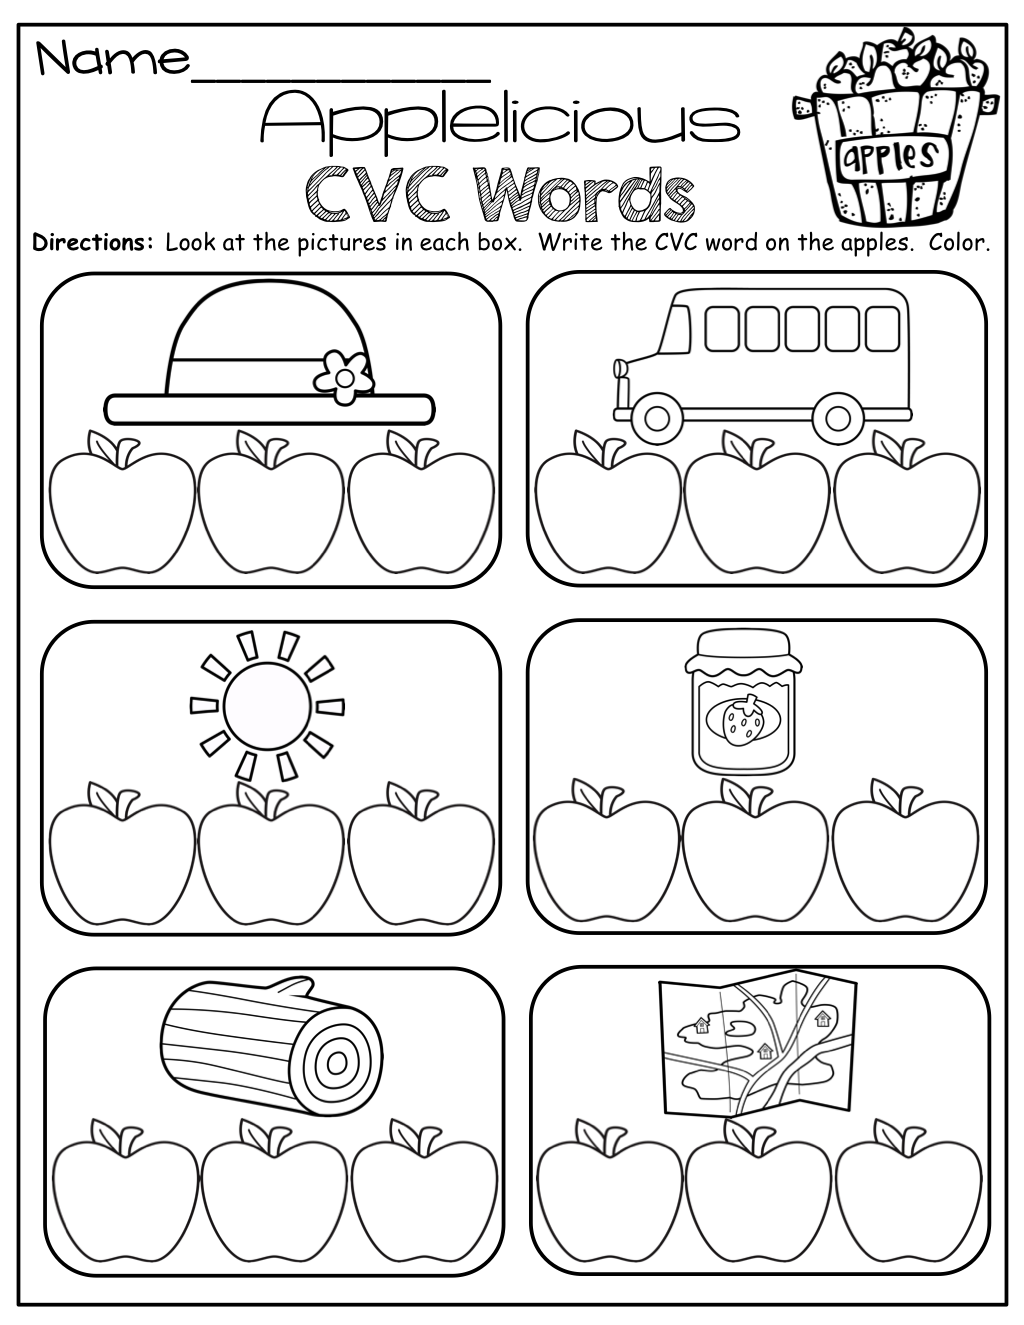 Make A Cvc Word Sound By Sound